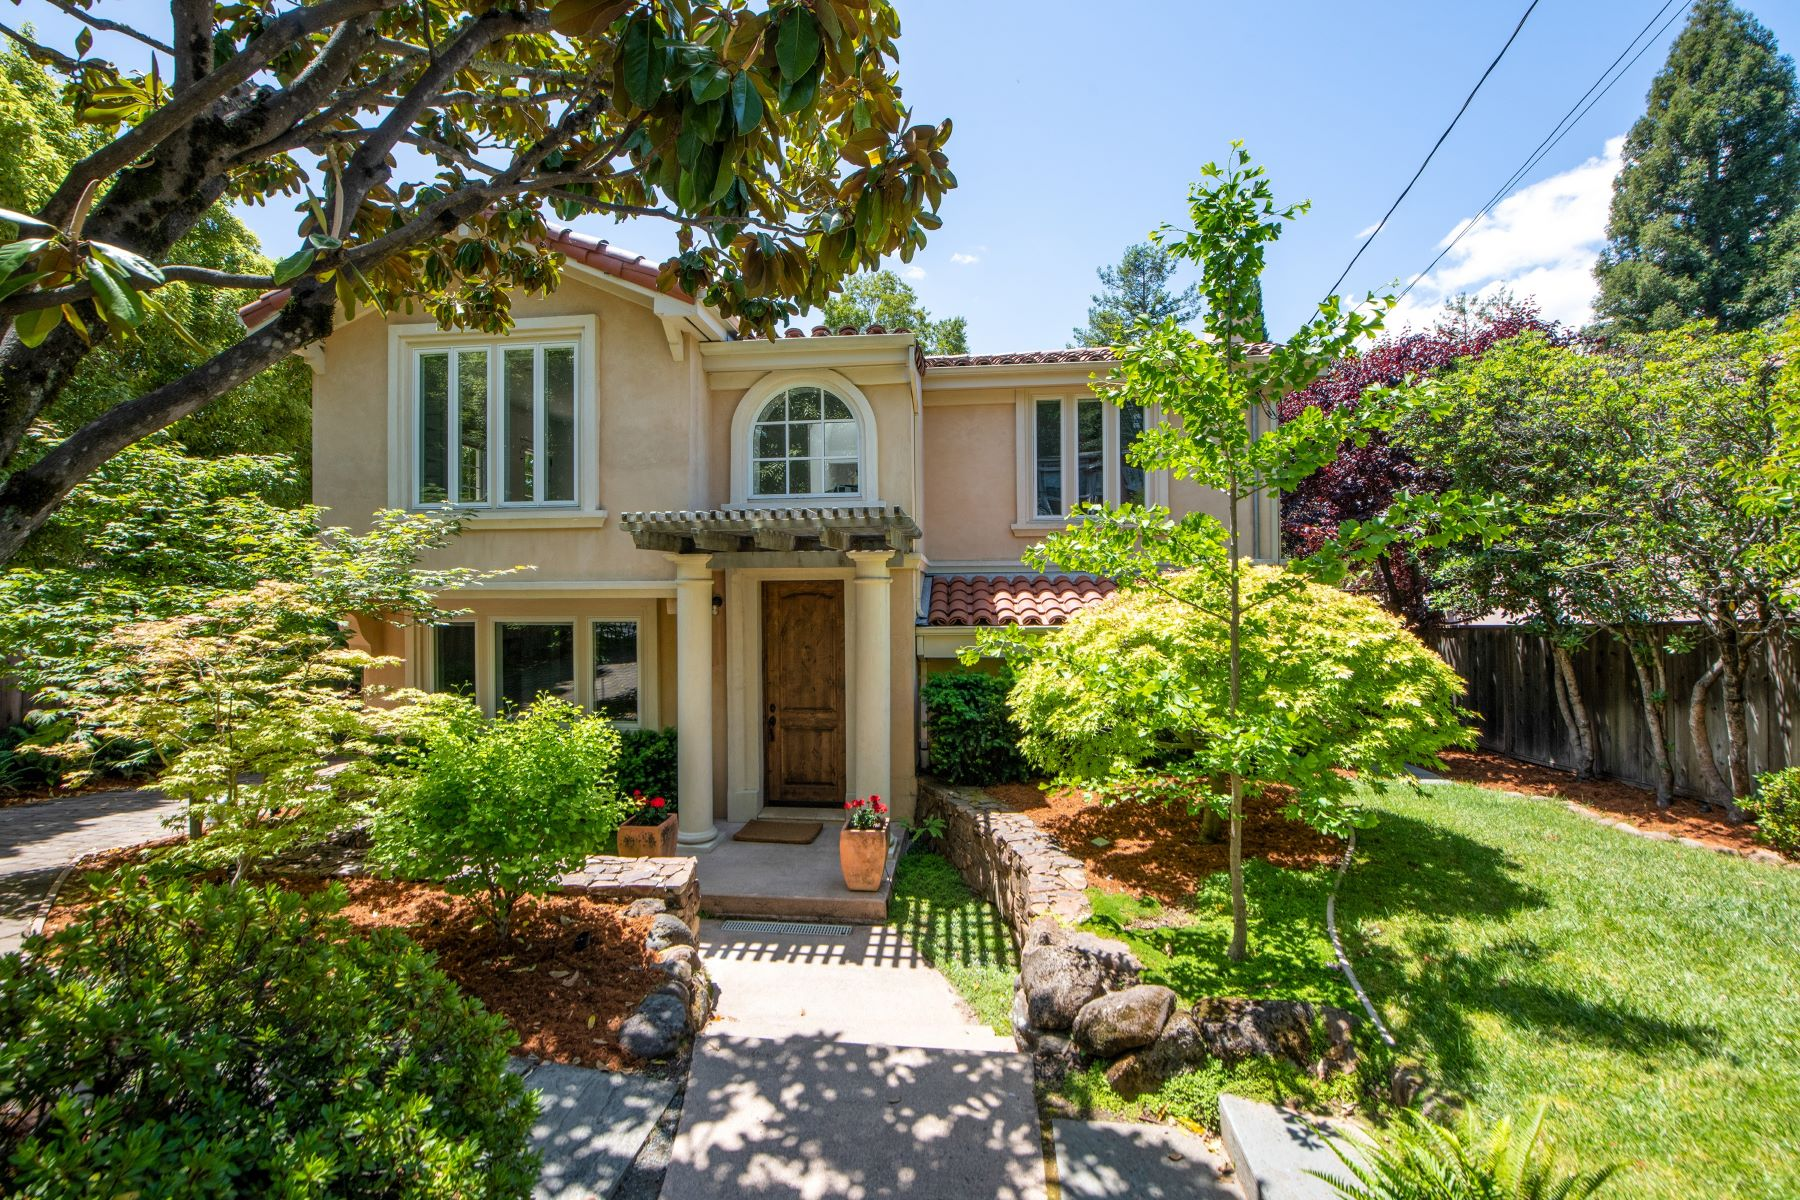 Single Family Homes for Active at Beautiful Rosebank Home 39 Rosebank Ave. Kentfield, California 94904 United States